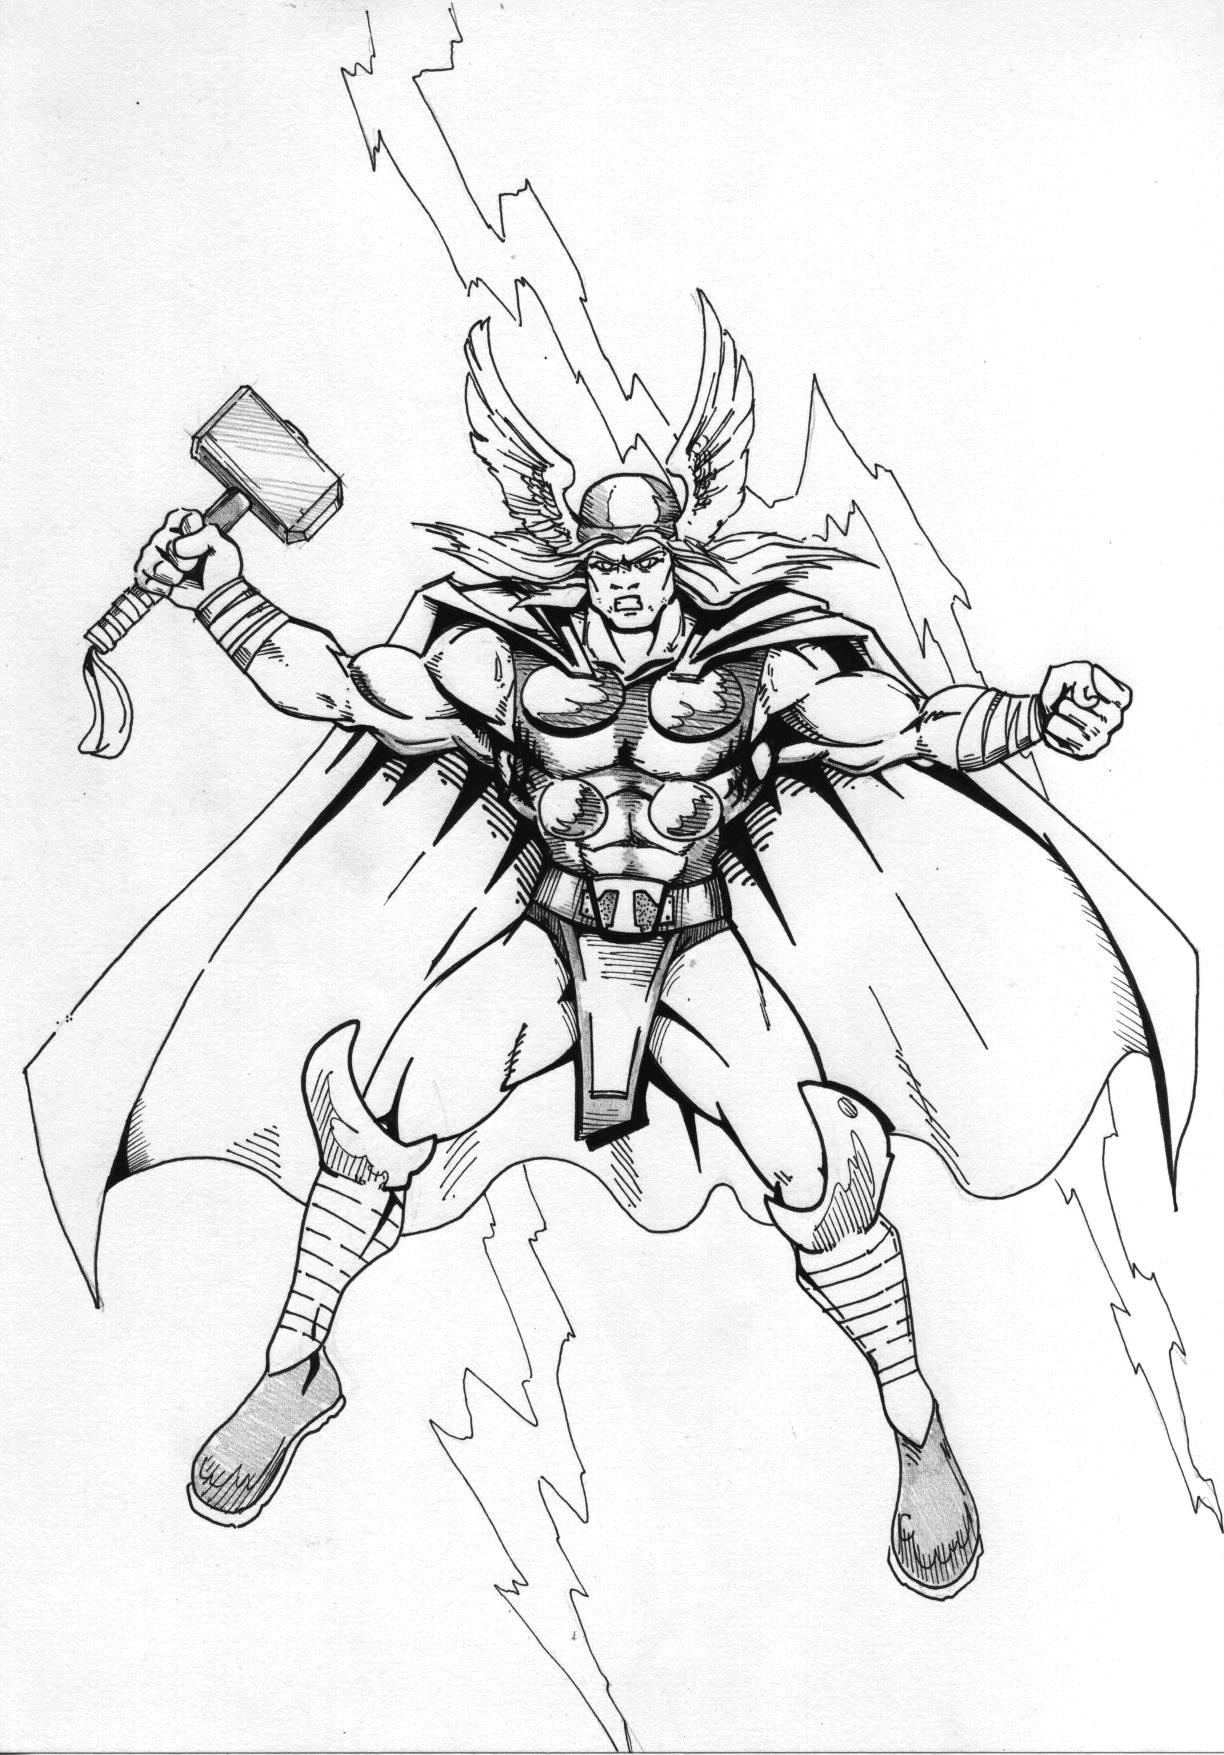 Thor lineart by Mace2006 on DeviantArt